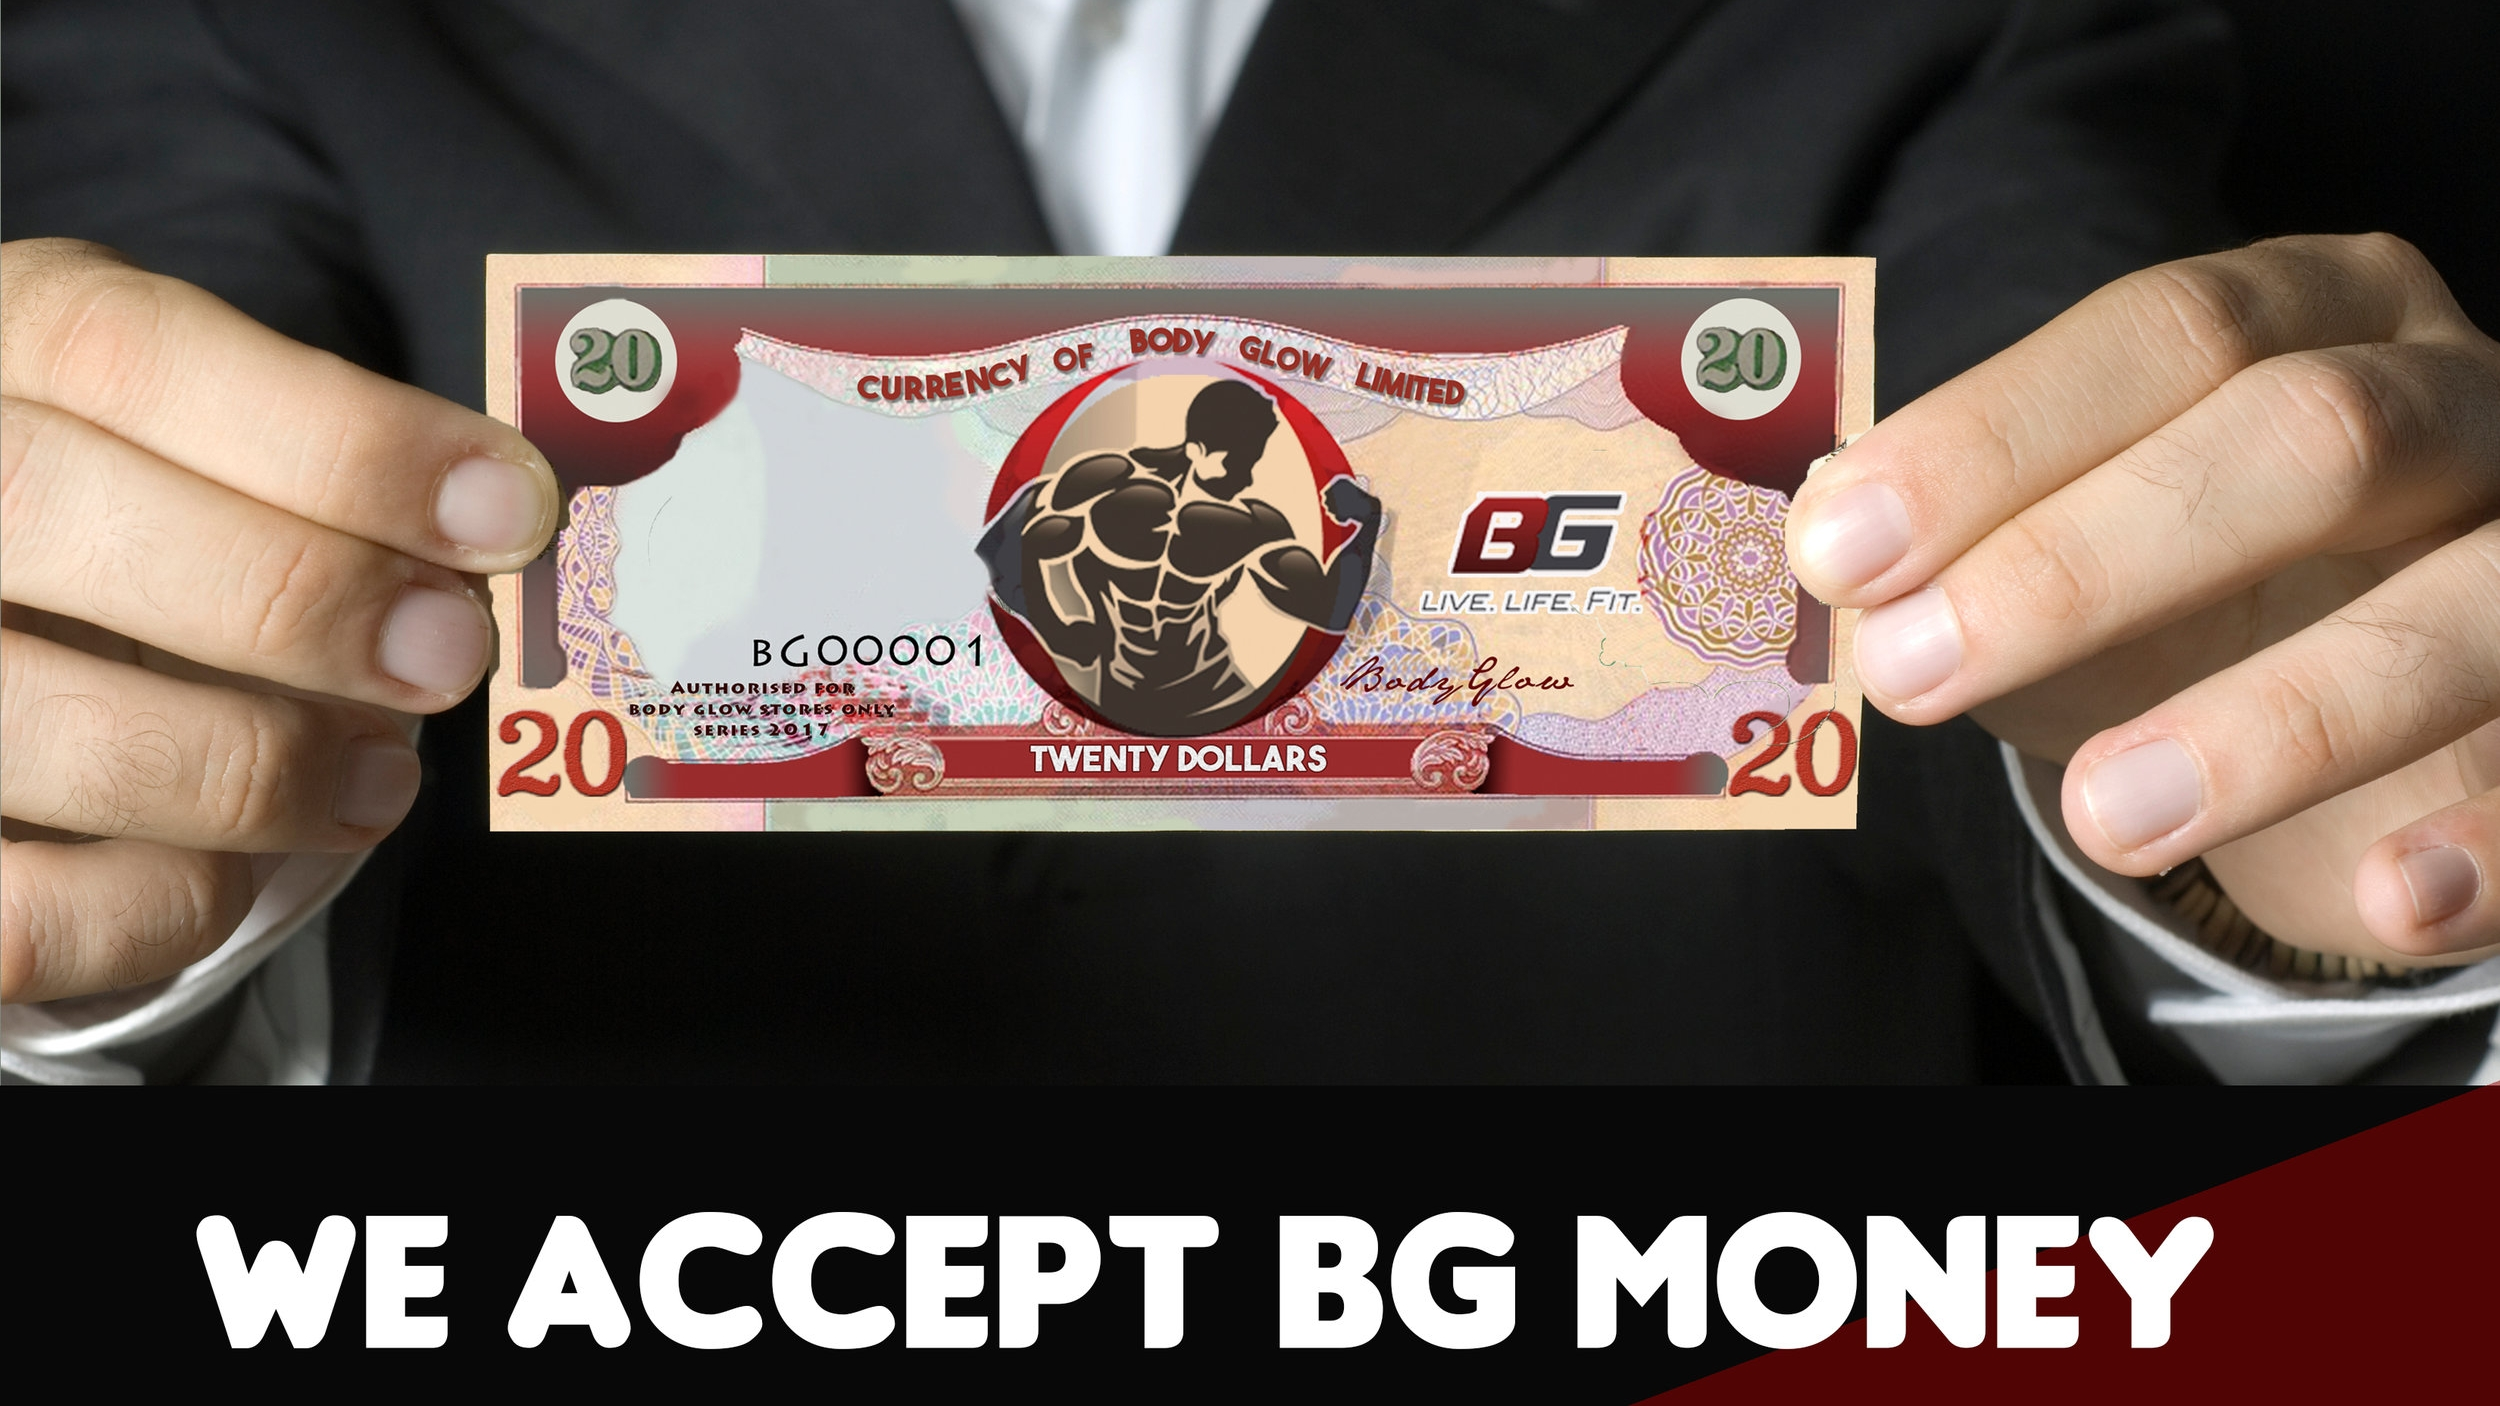 Feel free to redeem your BG Money at any BODYGLOW location nationwide when you receive it from our authorized affiliates. You are entitled to use your $20 BG bill on any purchased item over $250 ttd. -